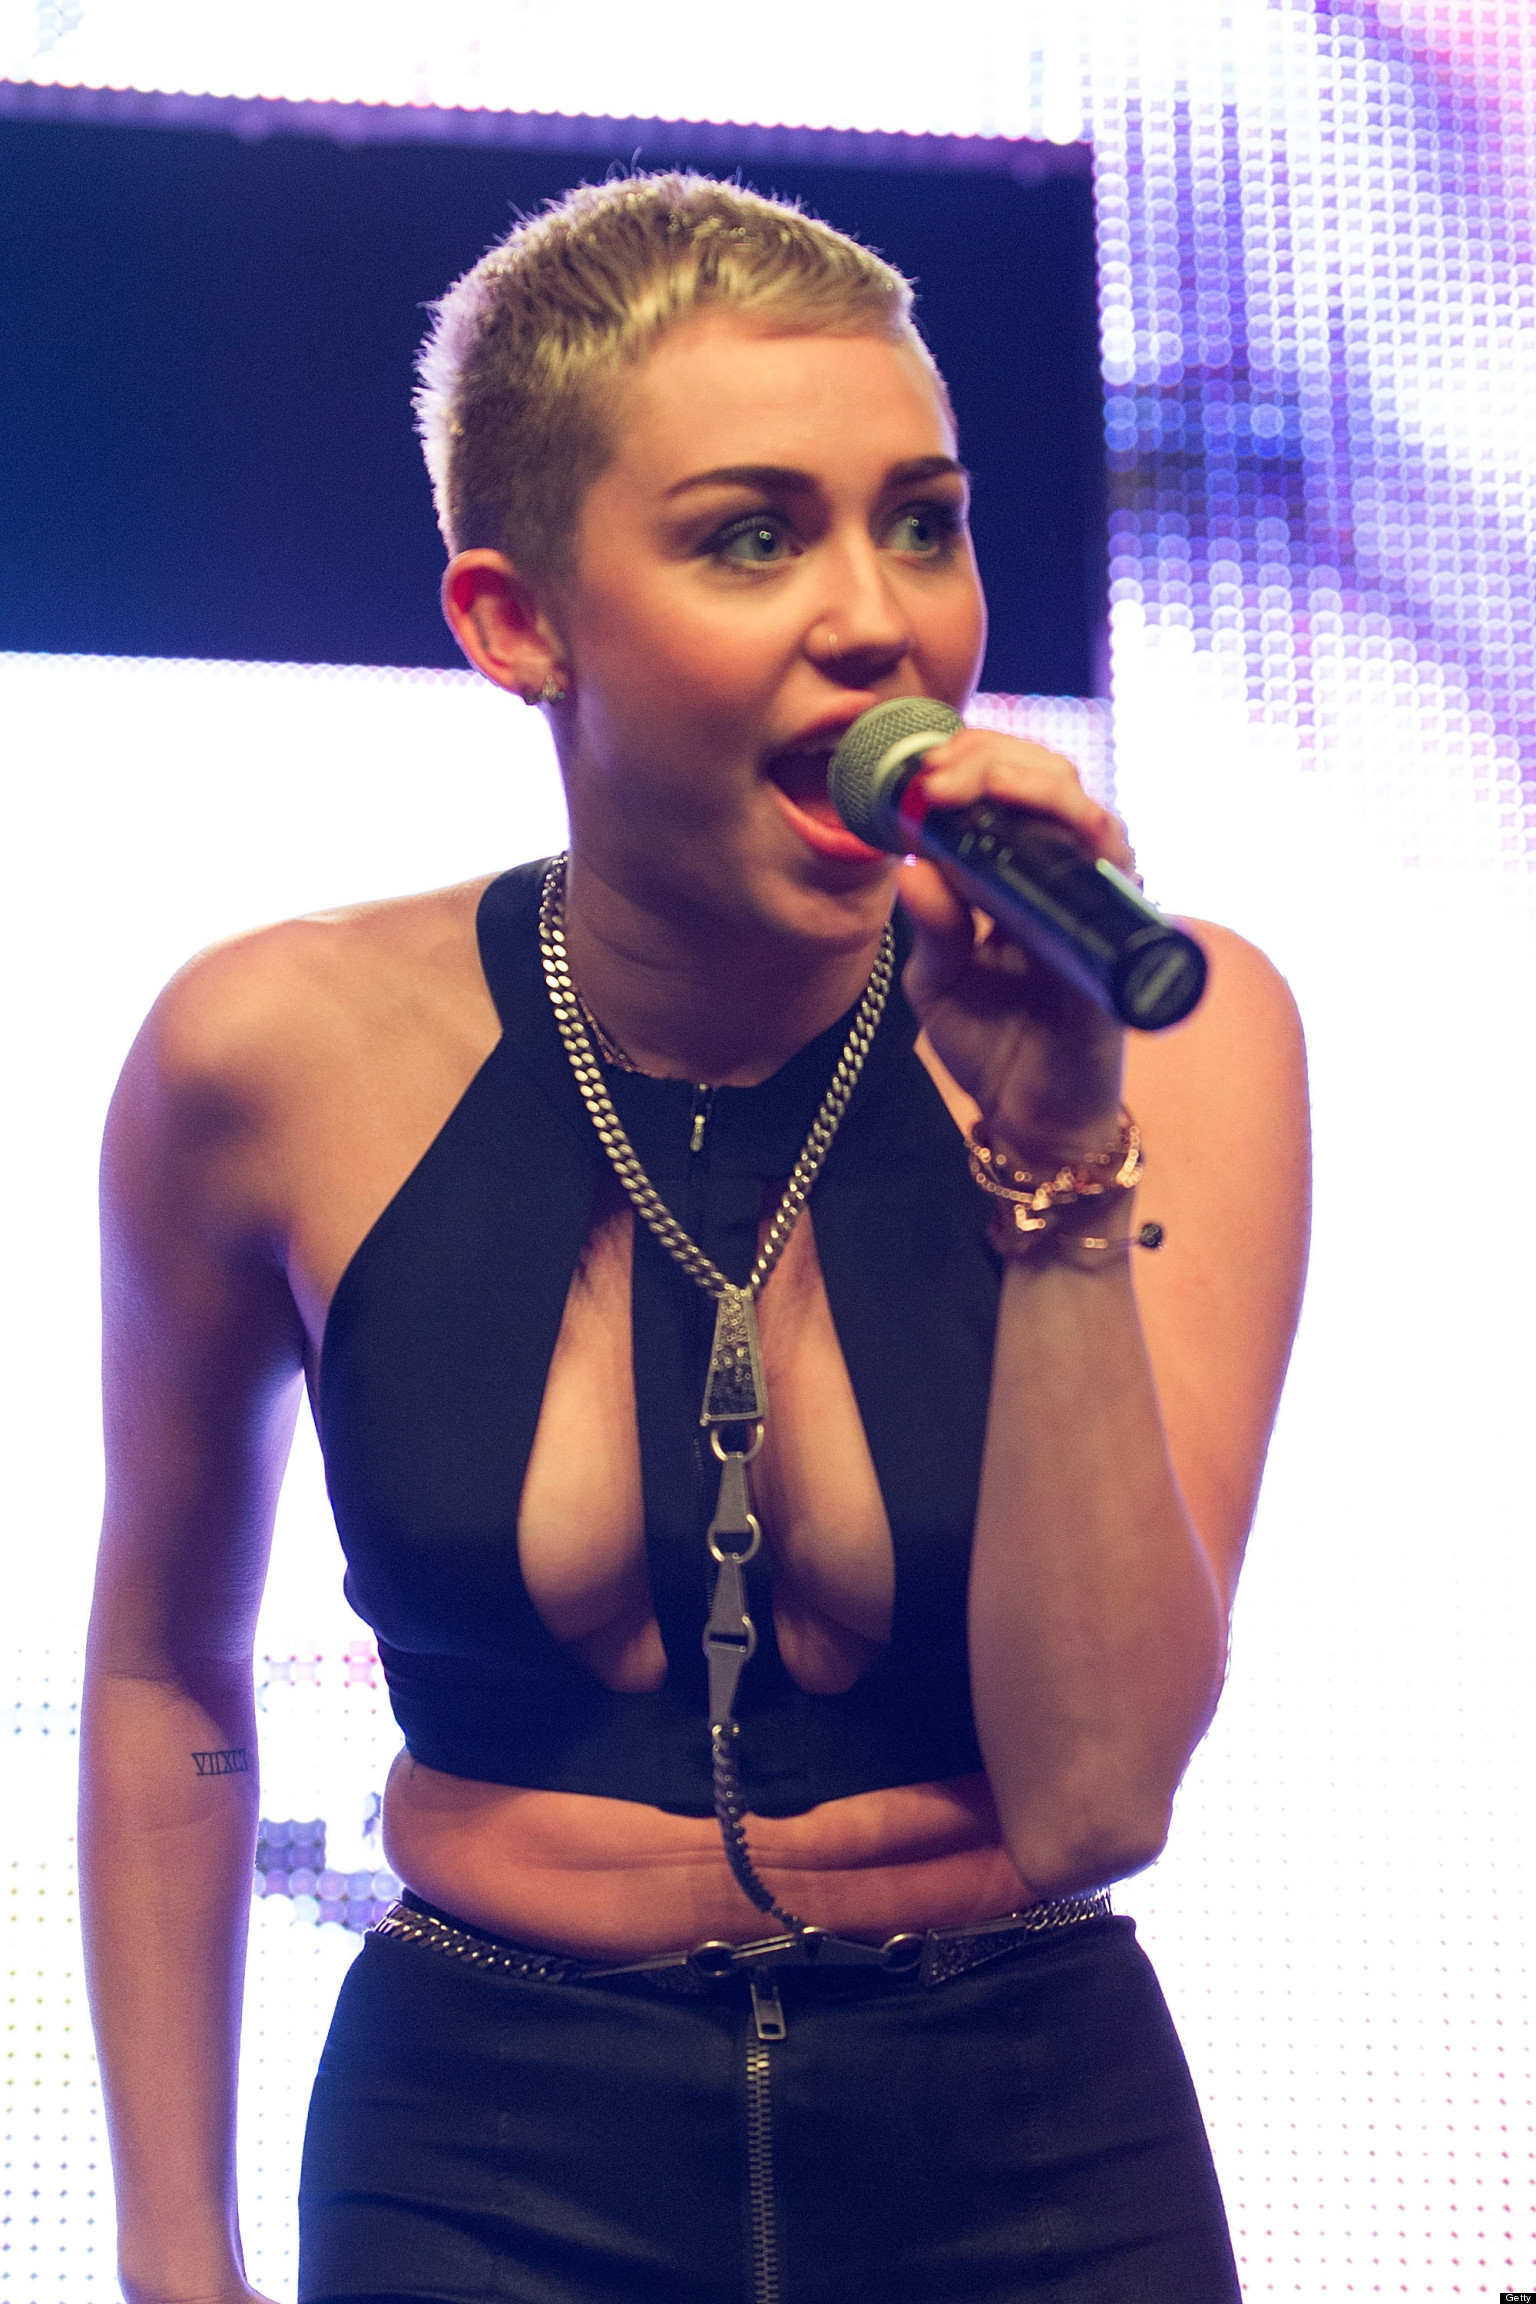 Miley Cyrus Dances With Stripper In Wild Christmas